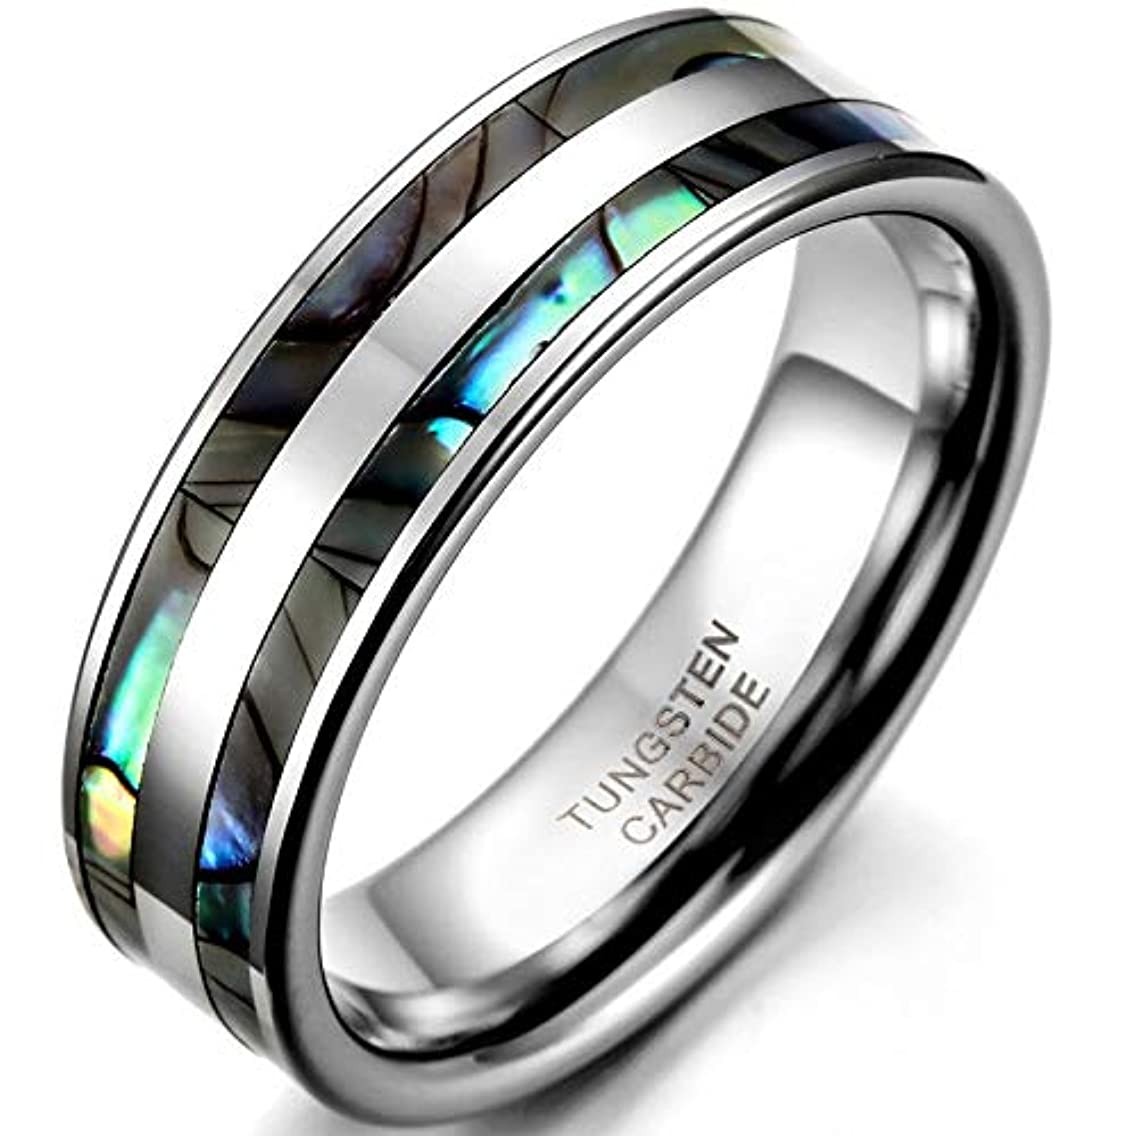 8mm Tungsten Carbide Ring with Double Abalone Shell Inlay for Men Engagement Wedding Bands Hombre